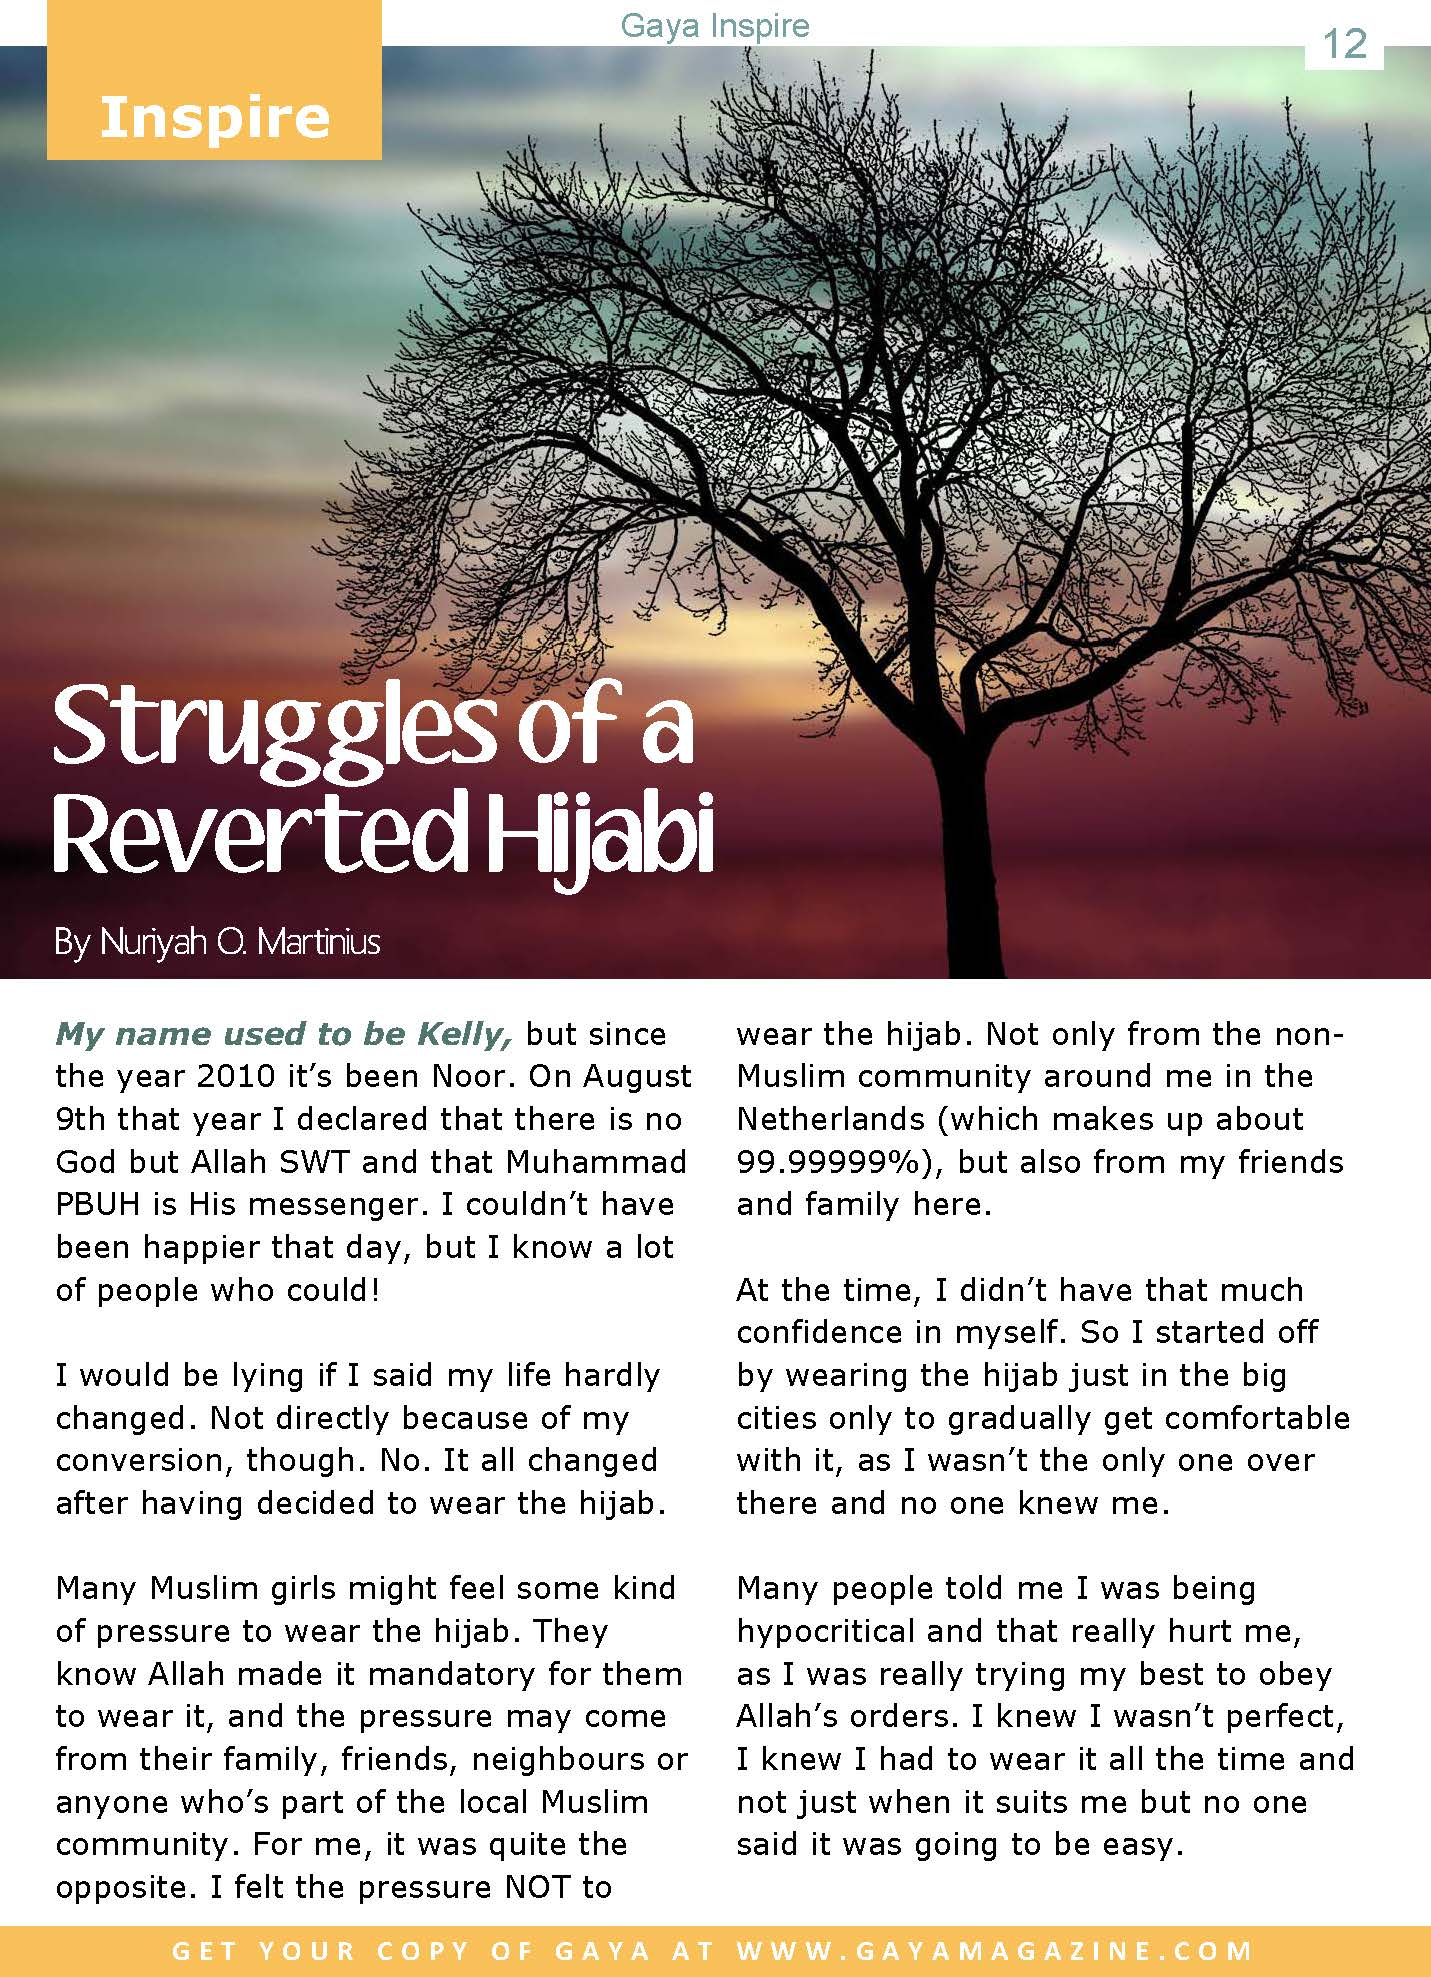 A-beautiful-story-by-a-Muslim-revert-Read-the-full-story-in-the-March-issue-of-Gaya-Download-free-wallpaper-wp4603364